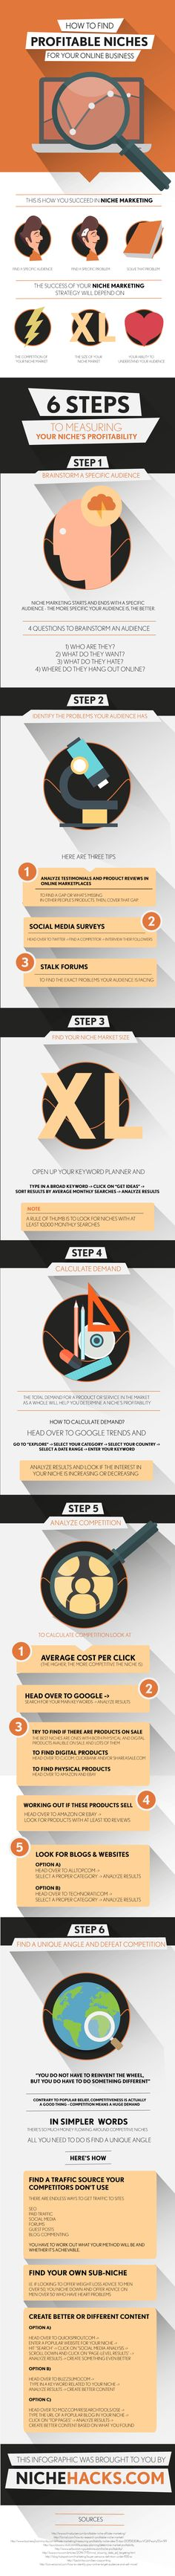 How To Find Profitable Niches For Your Online Business - #infographic